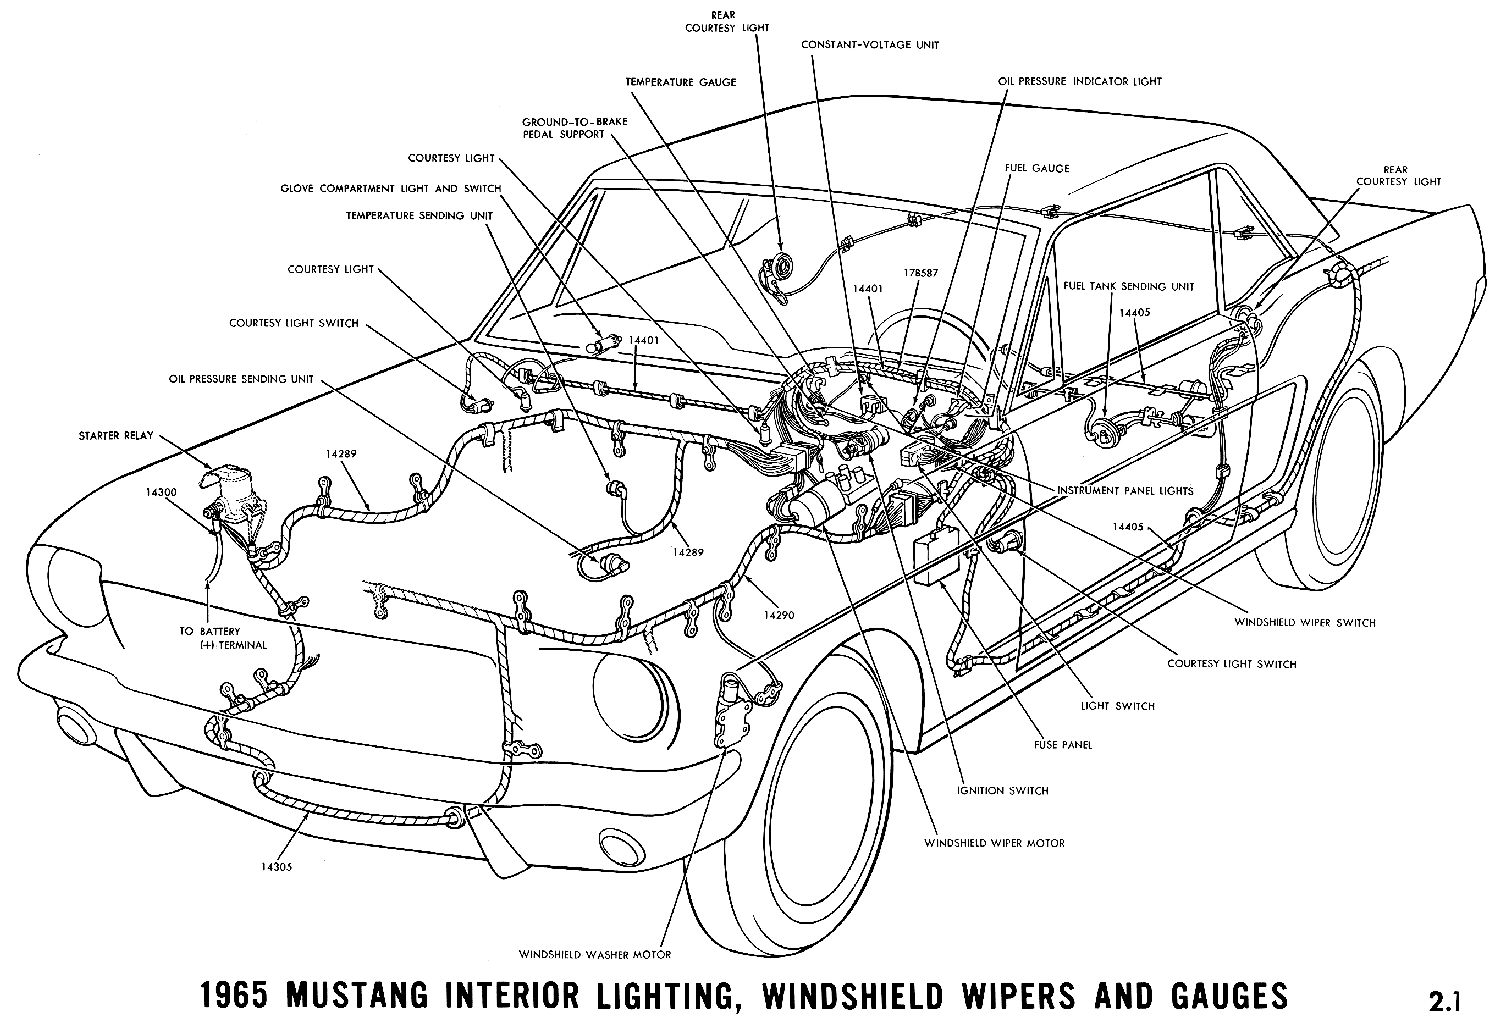 1965f 1965 mustang wiring diagrams average joe restoration 68 mustang alternator wiring diagram at nearapp.co